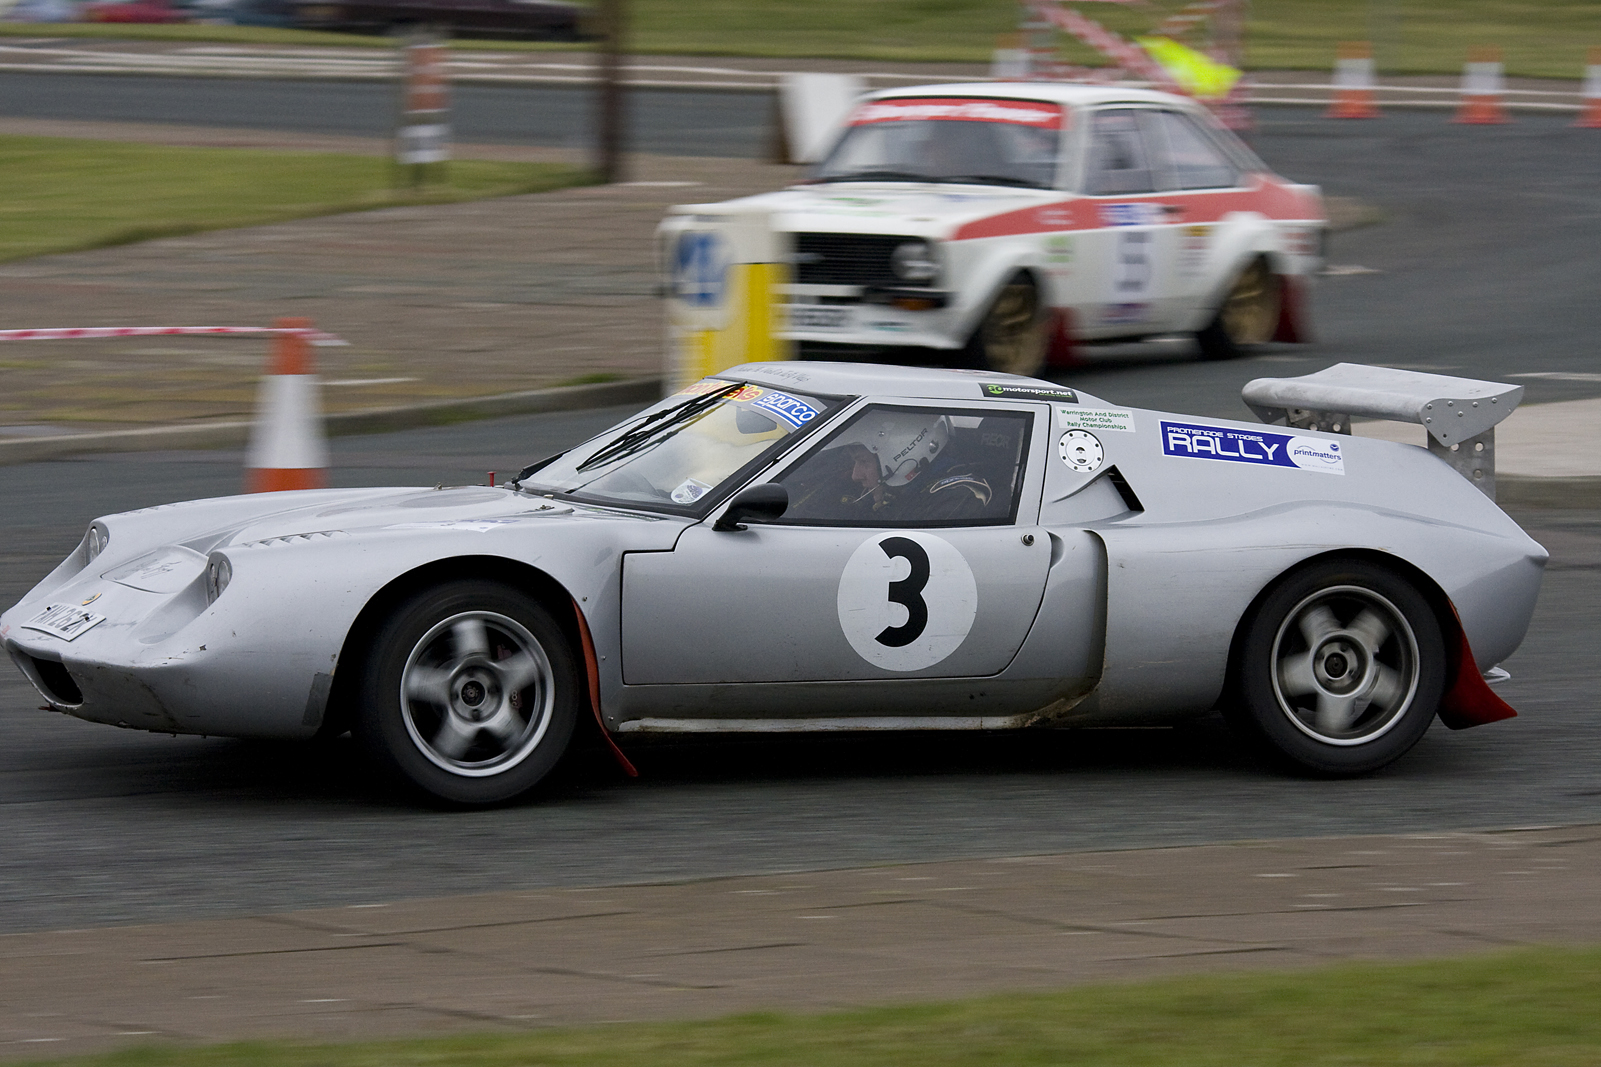 Lotus Europa - Stuart Deeley / Alistair Dodd | Flickr - Photo Sharing!